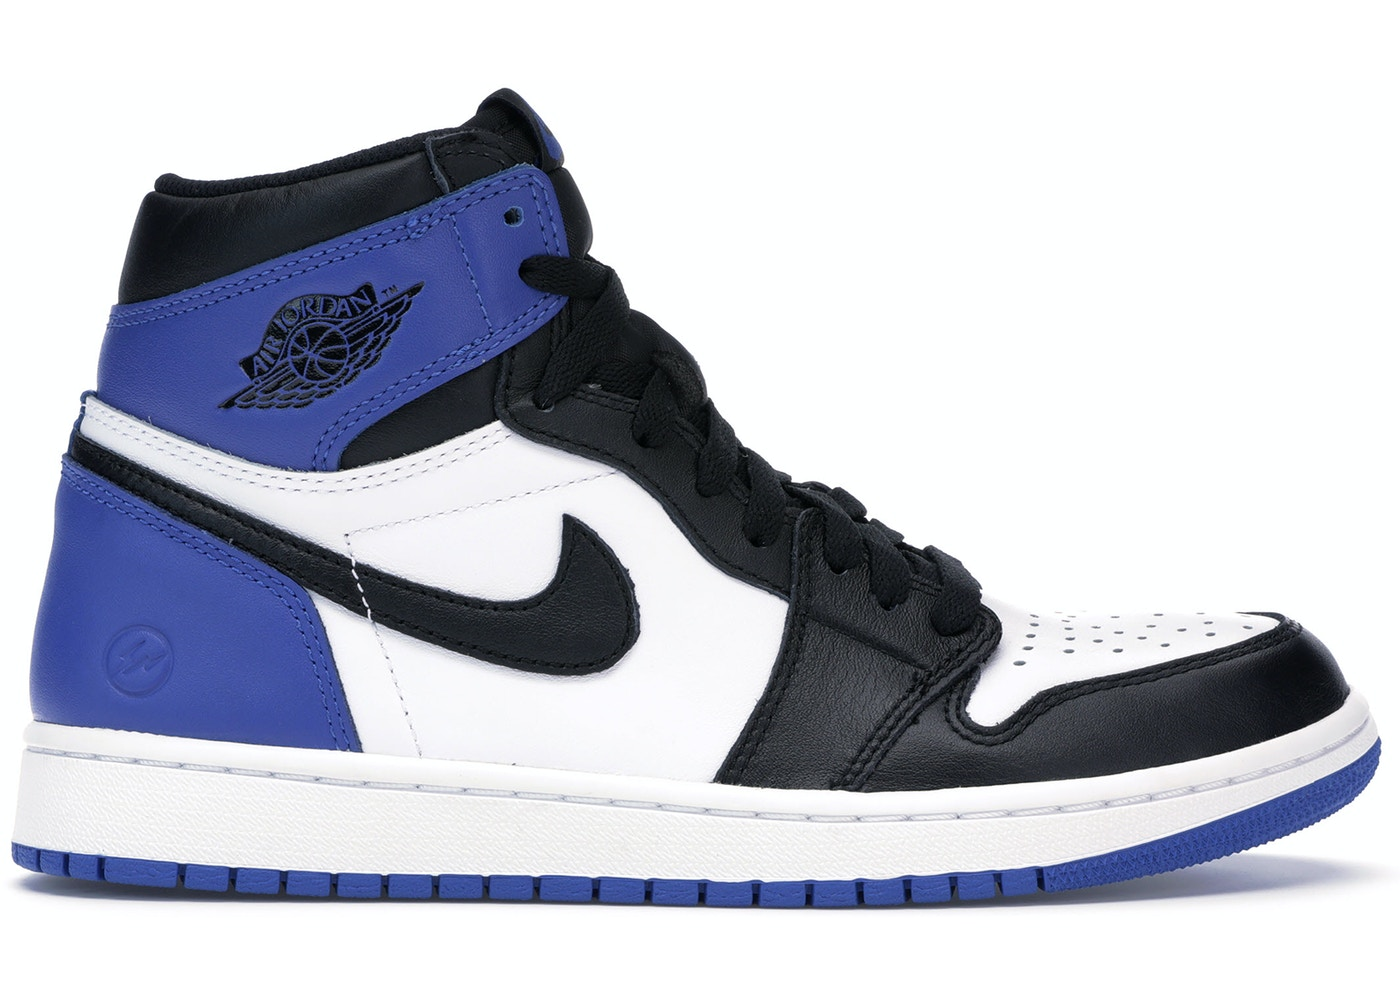 best website 06b6c a92fa Jordan 1 Retro Fragment - 716371-040